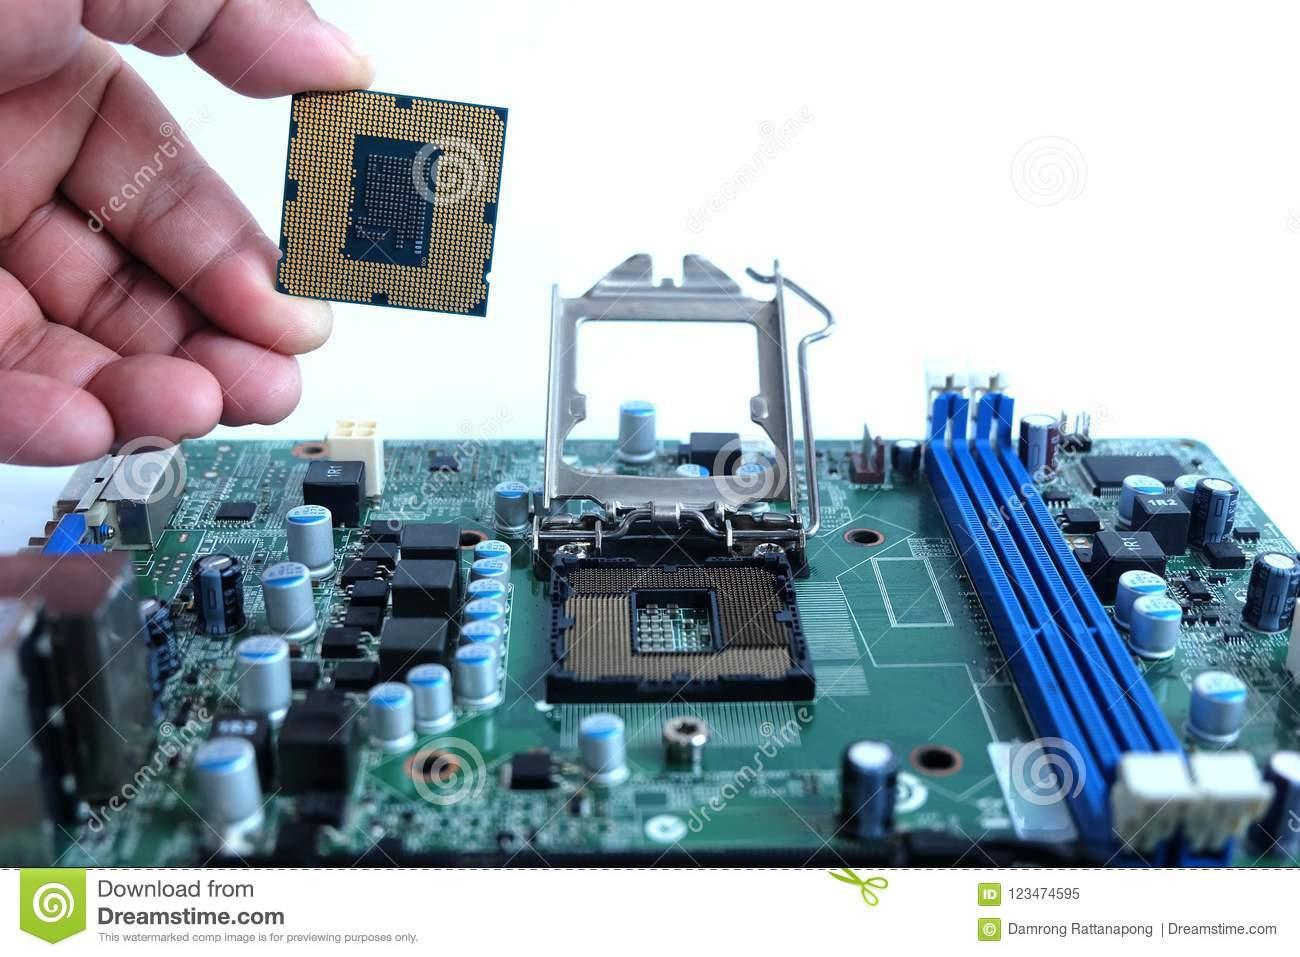 installing new cpu and motherboard